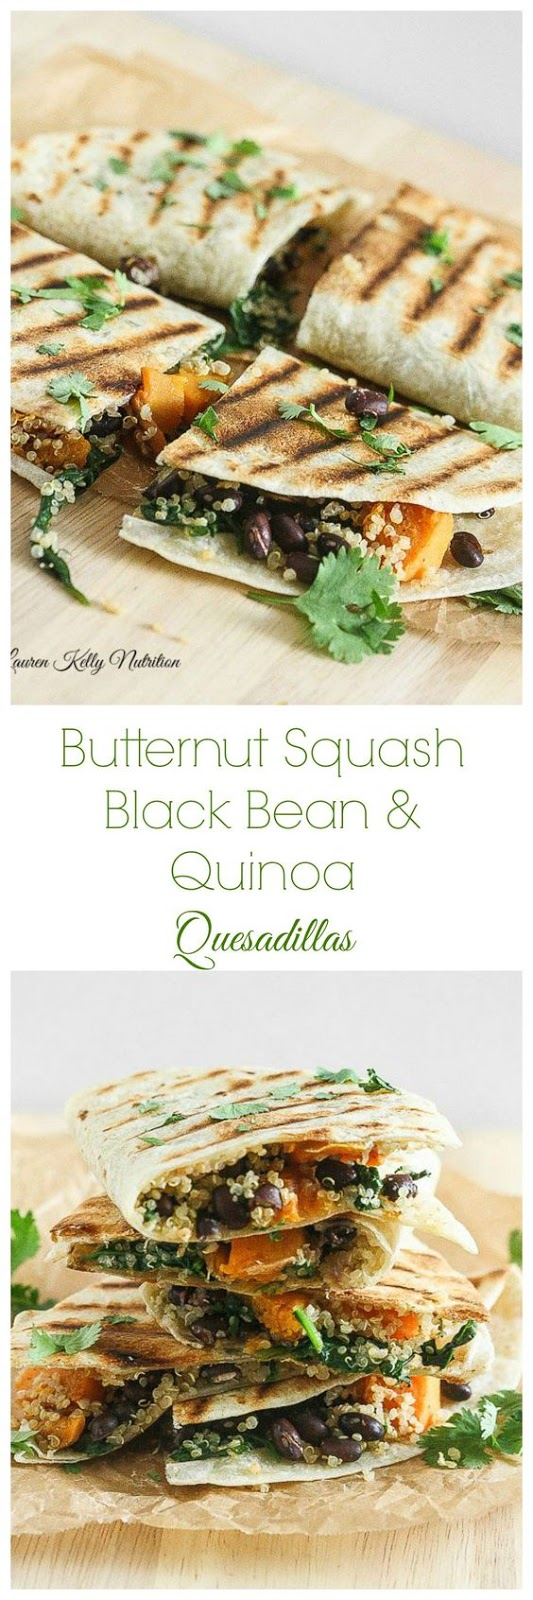 Butternut Squash Black Bean and Quinoa Quesadillas